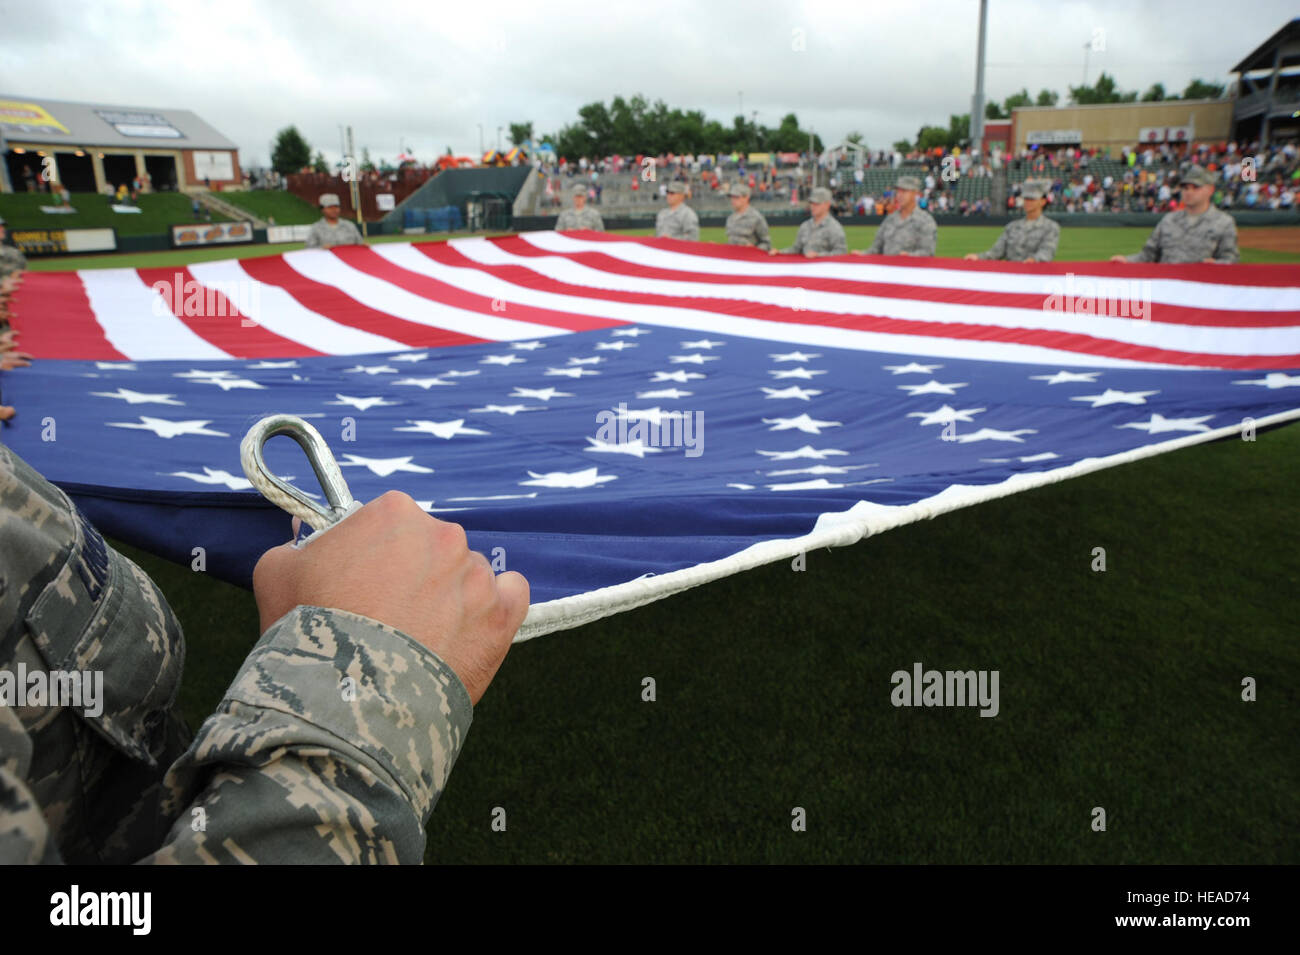 A joint service team from Whiteman Air Force Base conducted a Flag Detail at the Kansas City T-Bones baseball game, - Stock Image